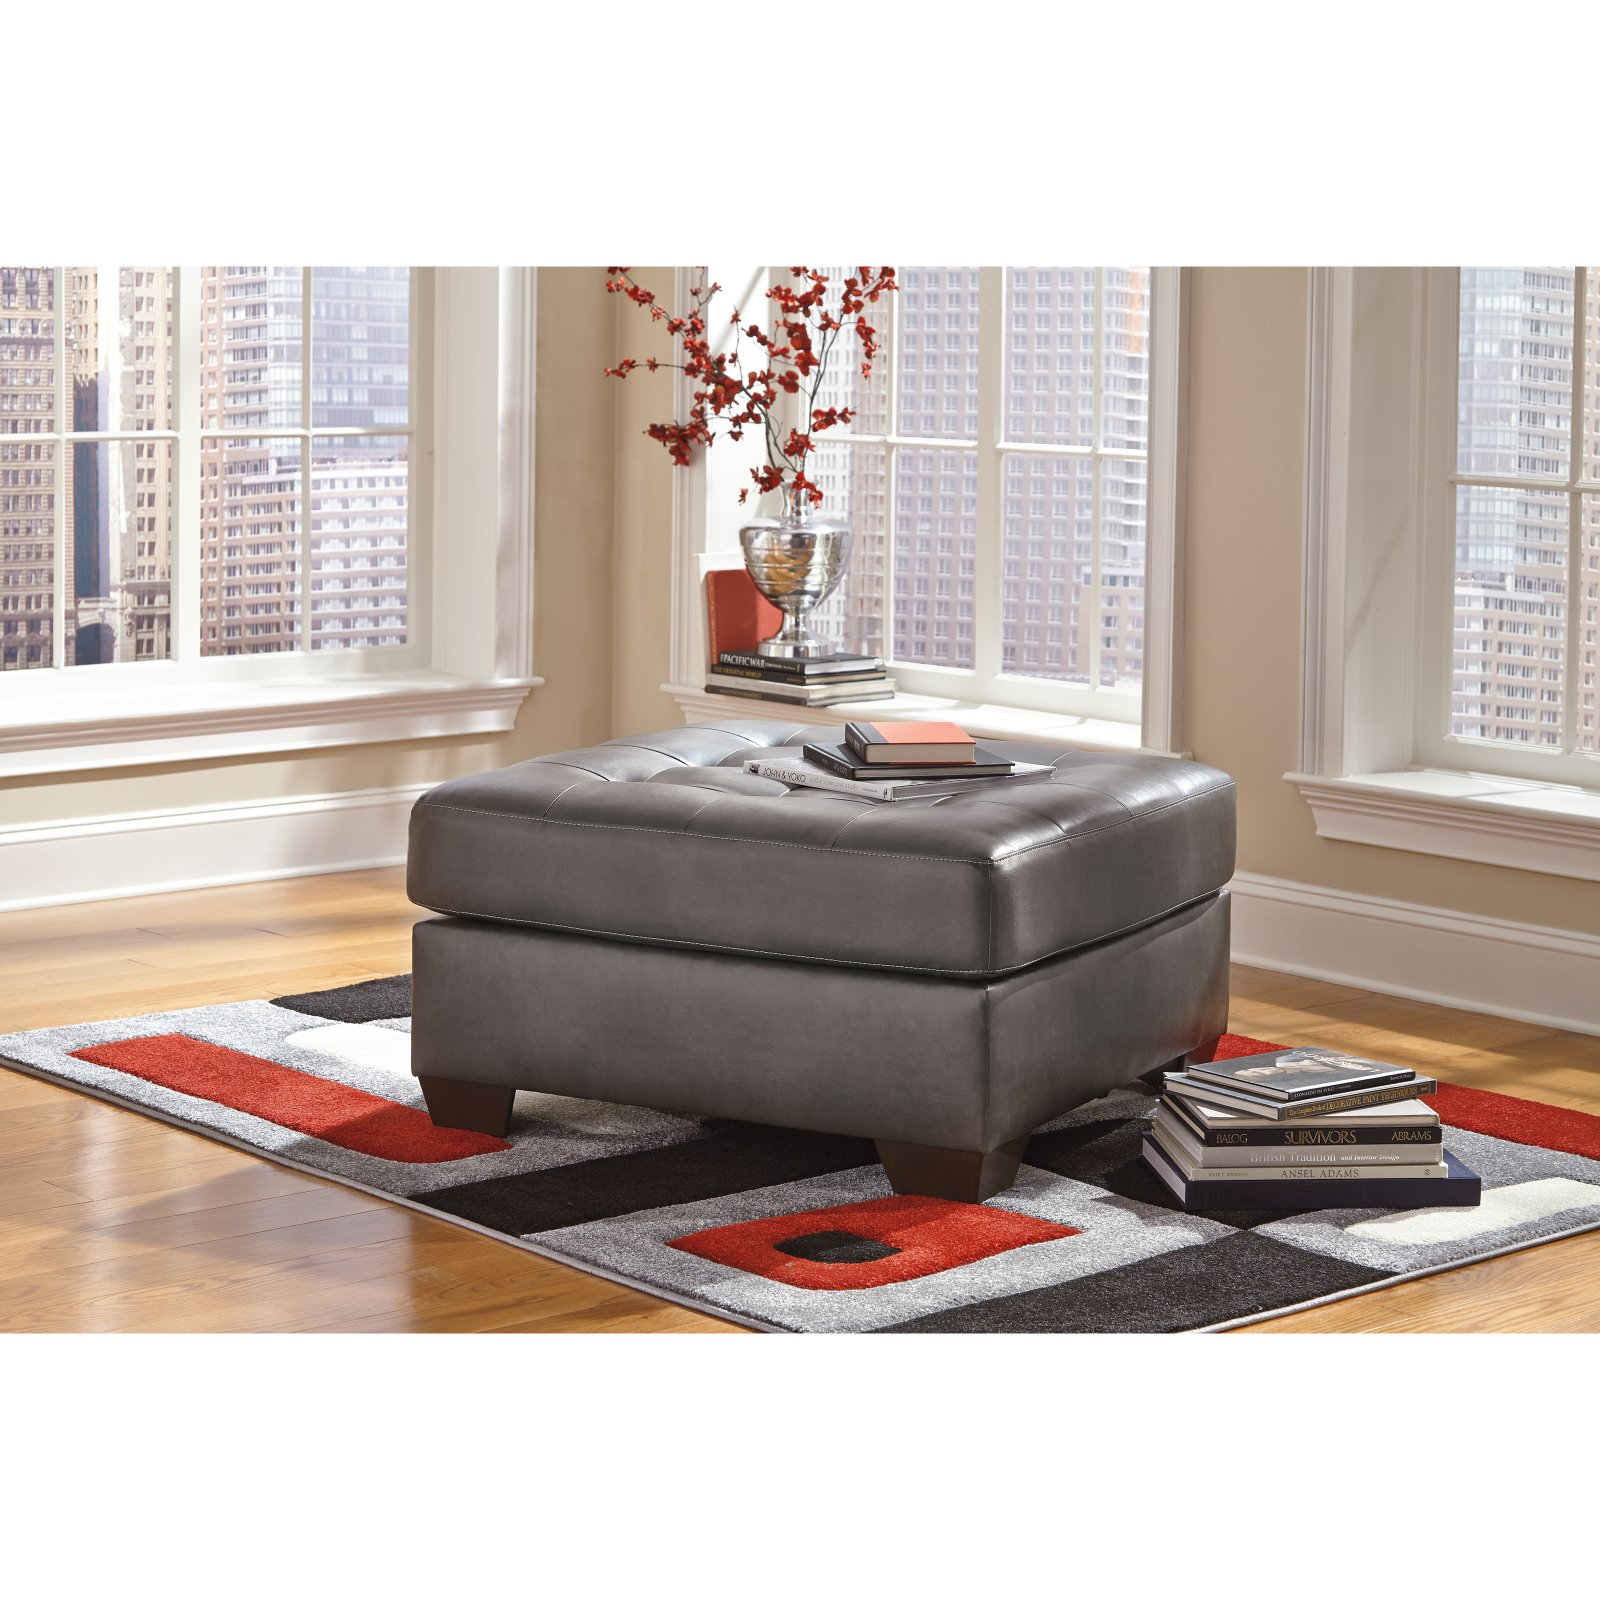 Signature Design by Ashley Alliston DuraBlend Ottoman